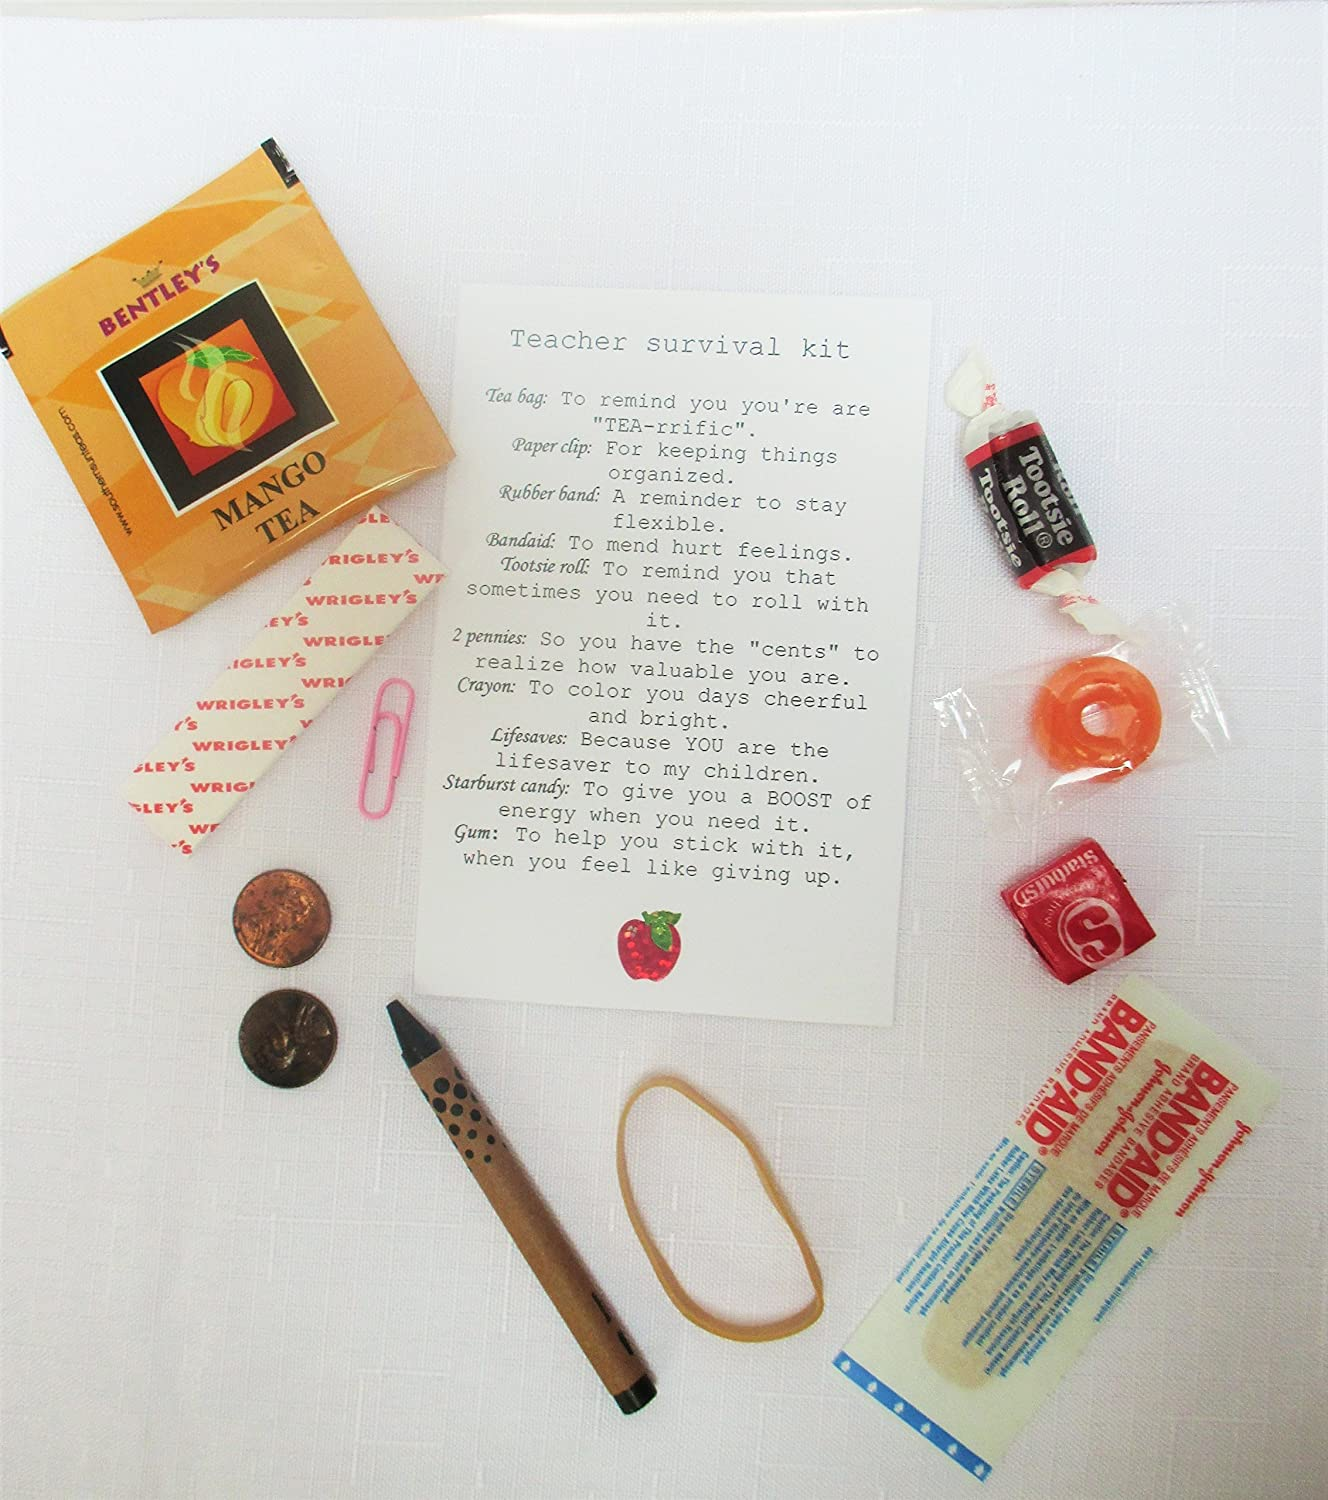 Teacher survival kit teacher gift